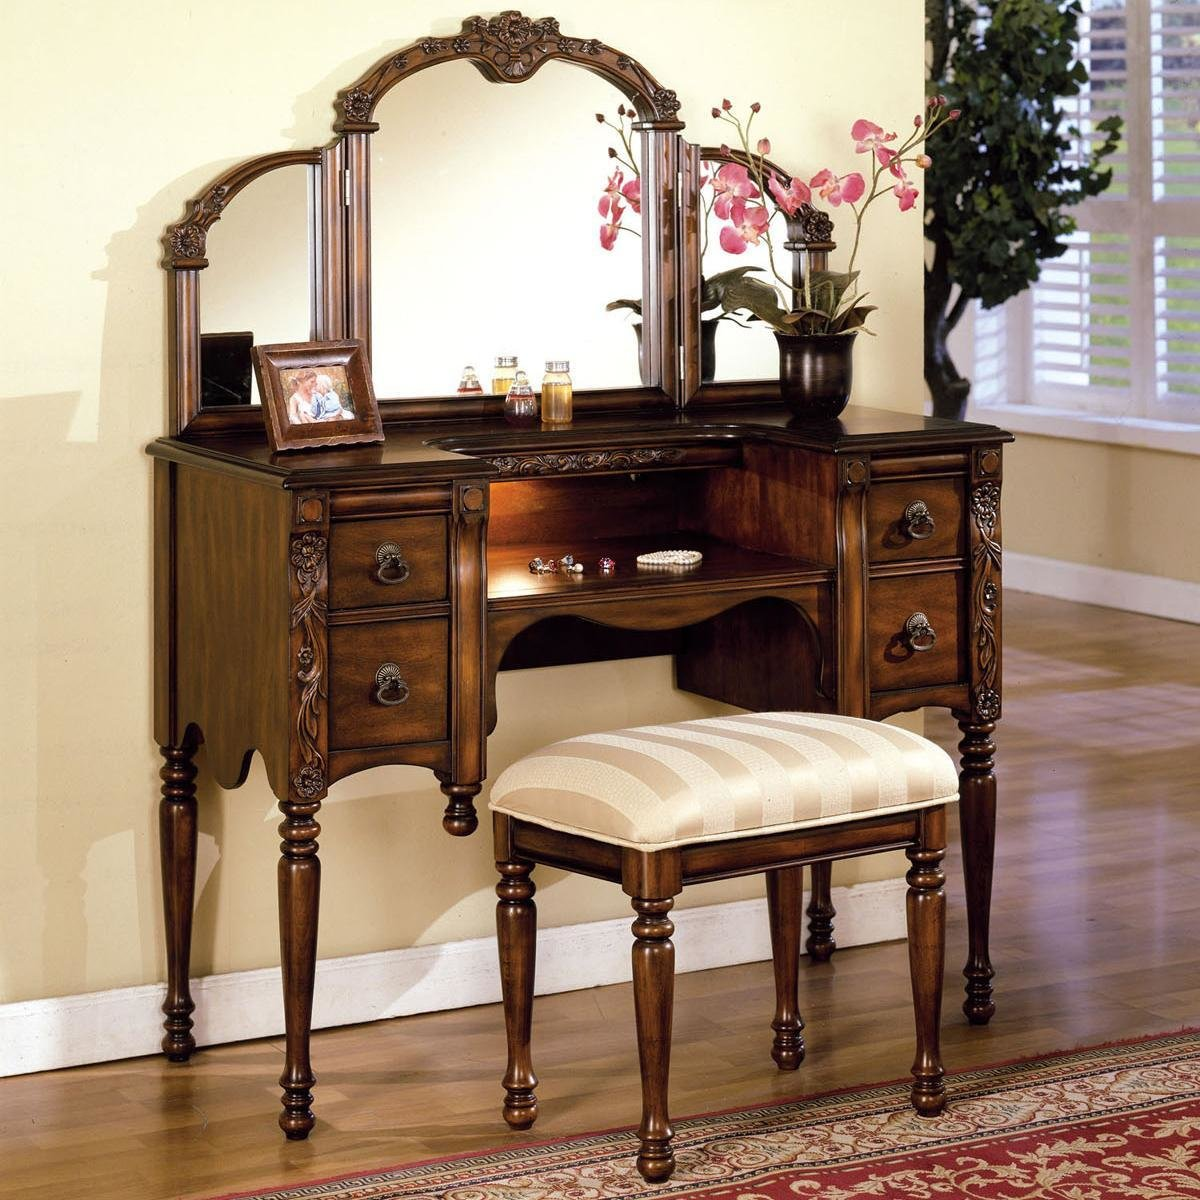 Best Acme Furniture Ashton Vanity Table Stool And Mirror Set Del Sol Furniture Vanity With Pictures